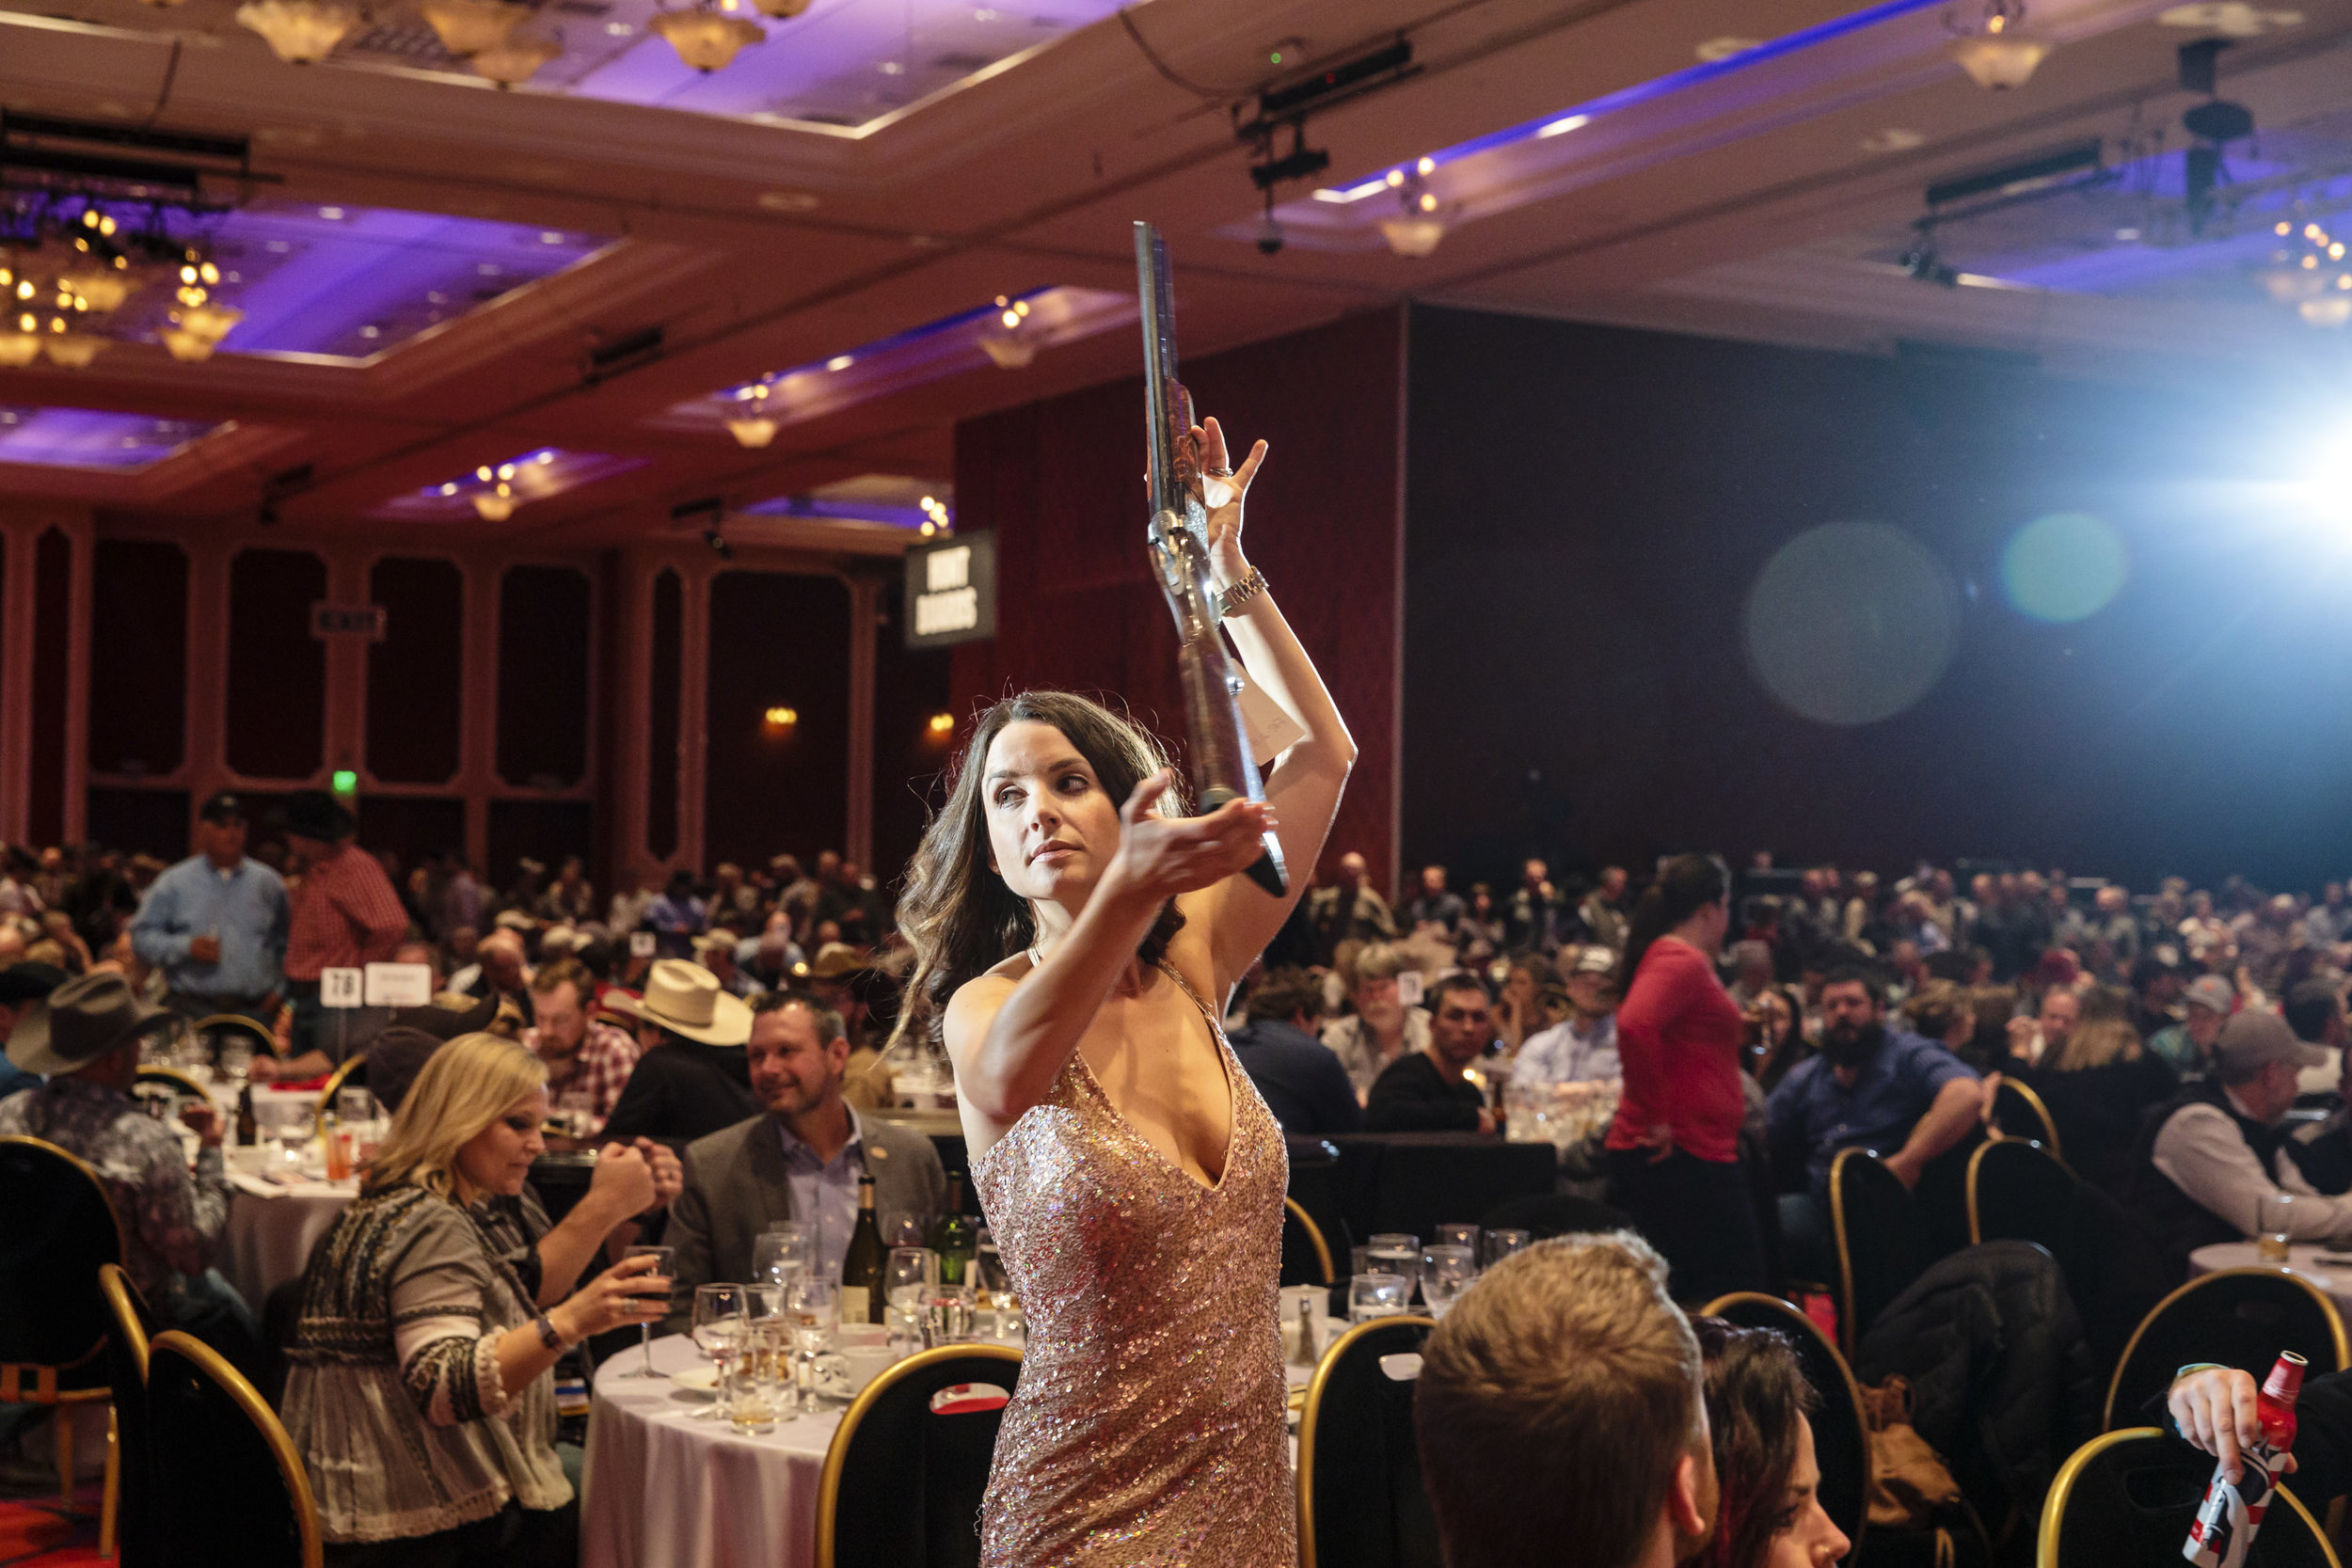 "RENO, NEVADA – JANUARY 20, 2017: Raffle girls display auction items at the Legacy Night banquet and auction that is part of the 2017 Wild Sheep Foundation Convention and Sporting Expo better known as ""The Sheep Show"", held at the Peppermill Resort, Spa & Casino in Reno , NV. The convention features more than 400 exhibits of guides and outfitters from around the world plus retailers selling gear, guns, art, taxidermy, jewelry, furs and every other outdoor item you can think of. The three-day event includes silent and live auctions, raffles, lectures, backpack races and more. Later that night, a bighorn sheep hunting license would be auctioned off for more than $300,000. Over the past 24 months, the Wild Sheep Foundation has directed more than $8.75 million to programs that include the promotion of wild sheep enhancement and conservation, habitat improvement, youth education, and sound wildlife management practices. CREDIT: Leah Nash for The New York Times"